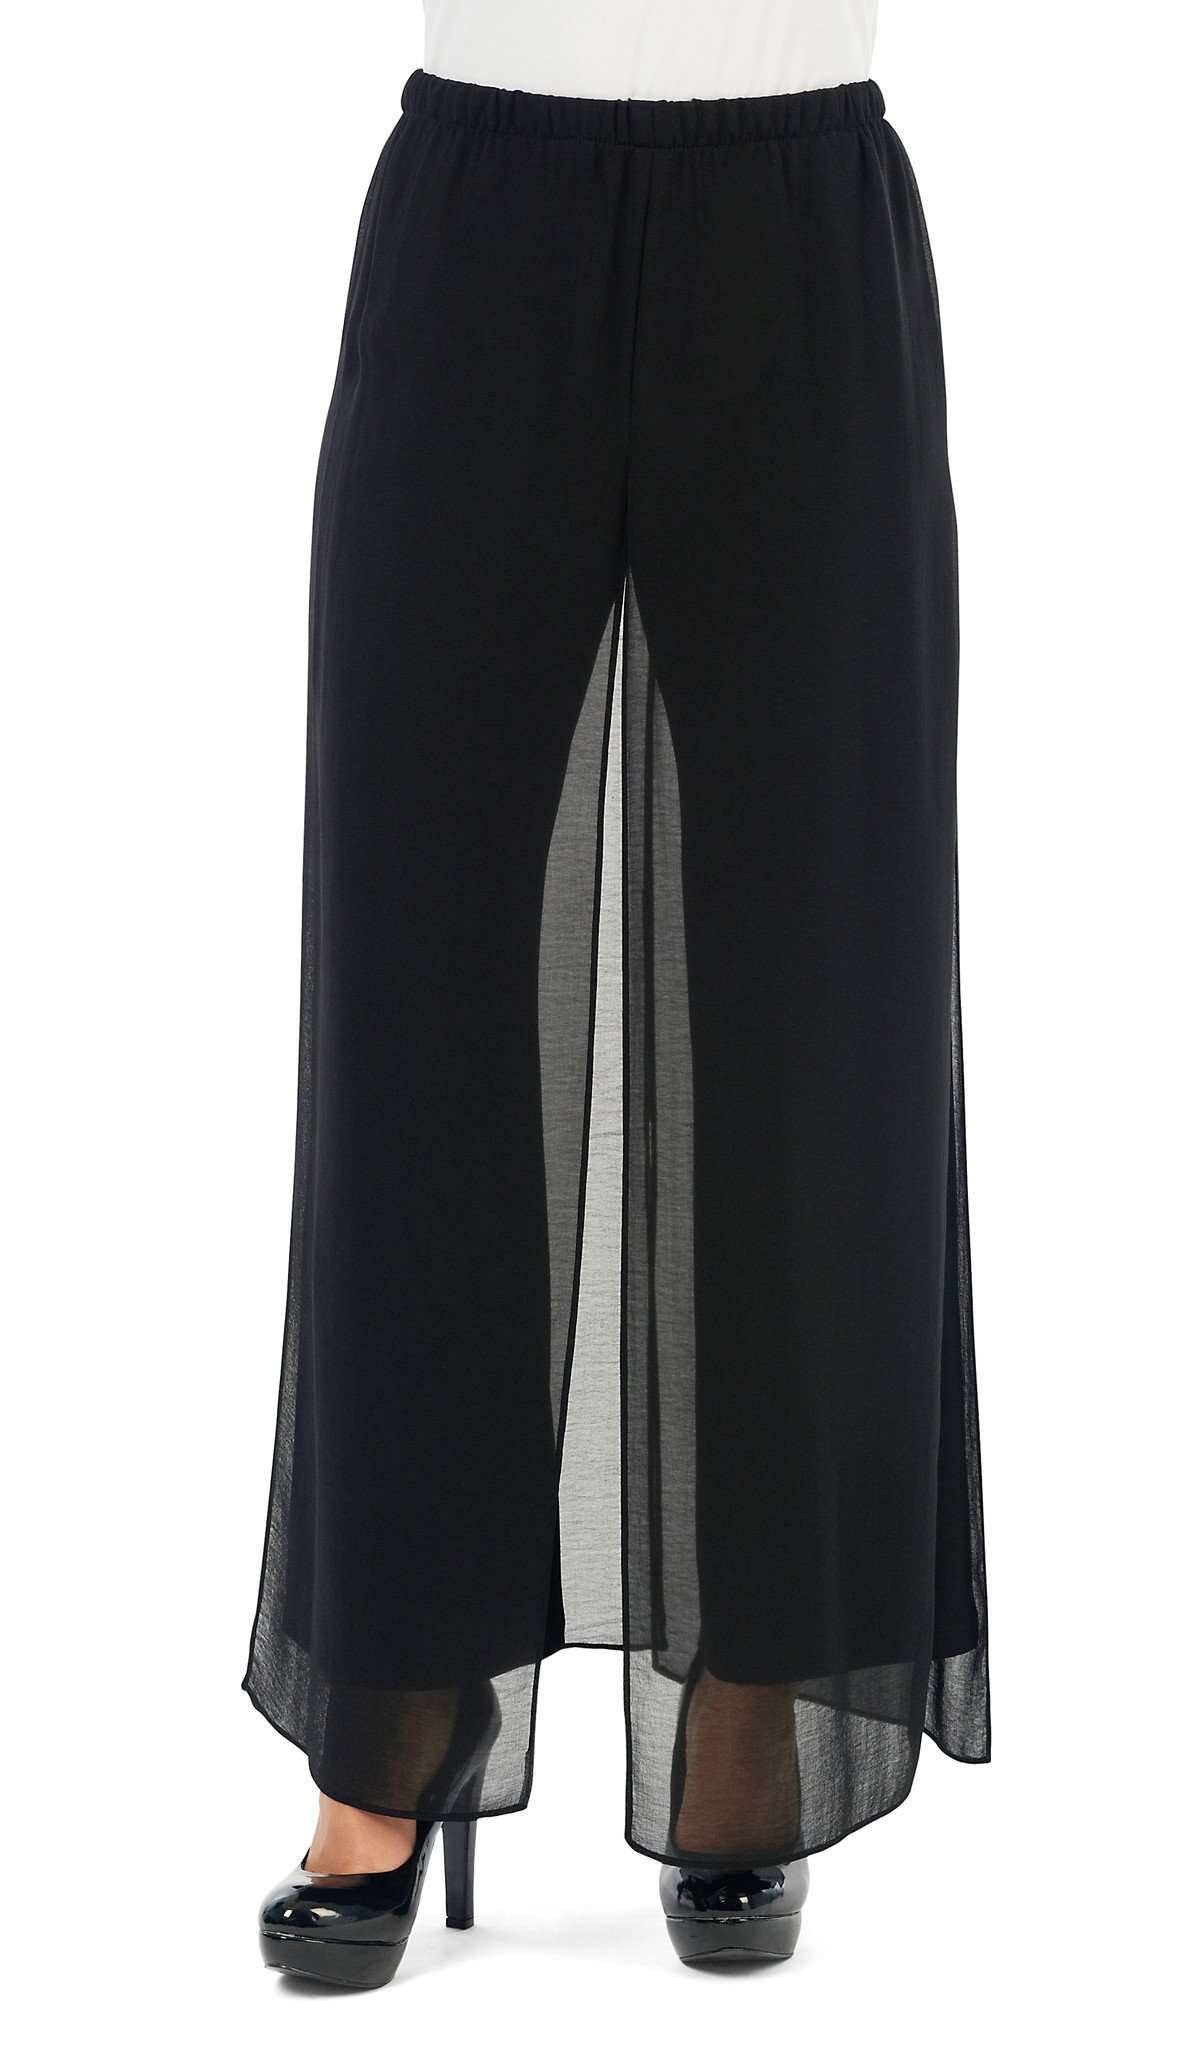 Women's Black Palazzo Pants On Sale-Now 50 Off-made in Canada - Yvonne Marie - Yvonne Marie